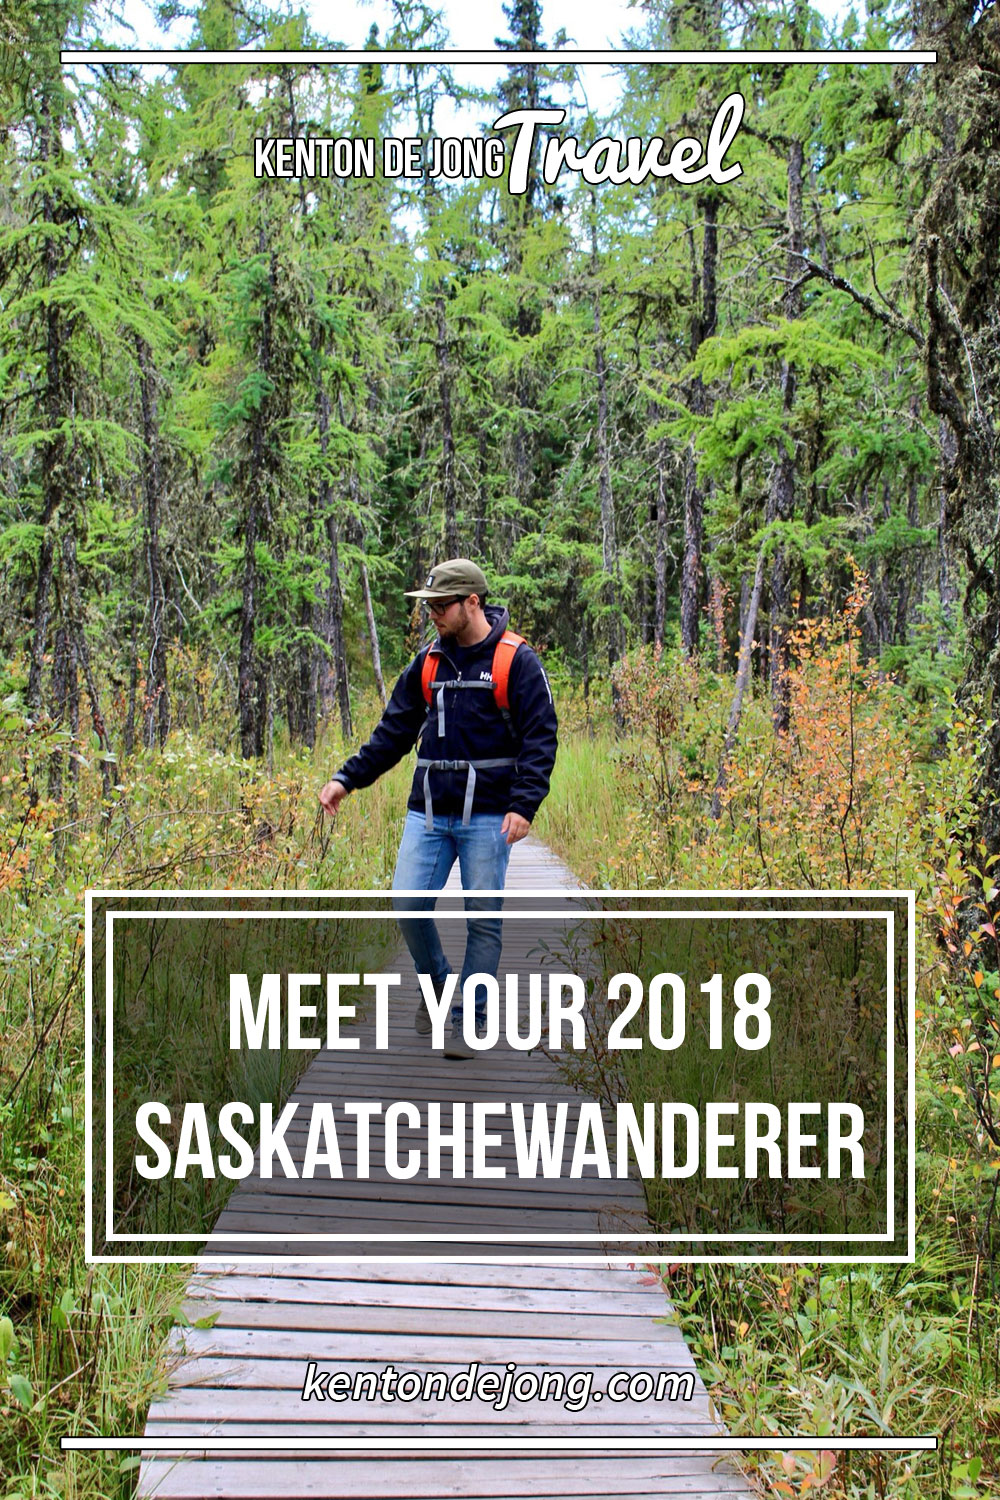 Meet Your 2018 Saskatchewanderer